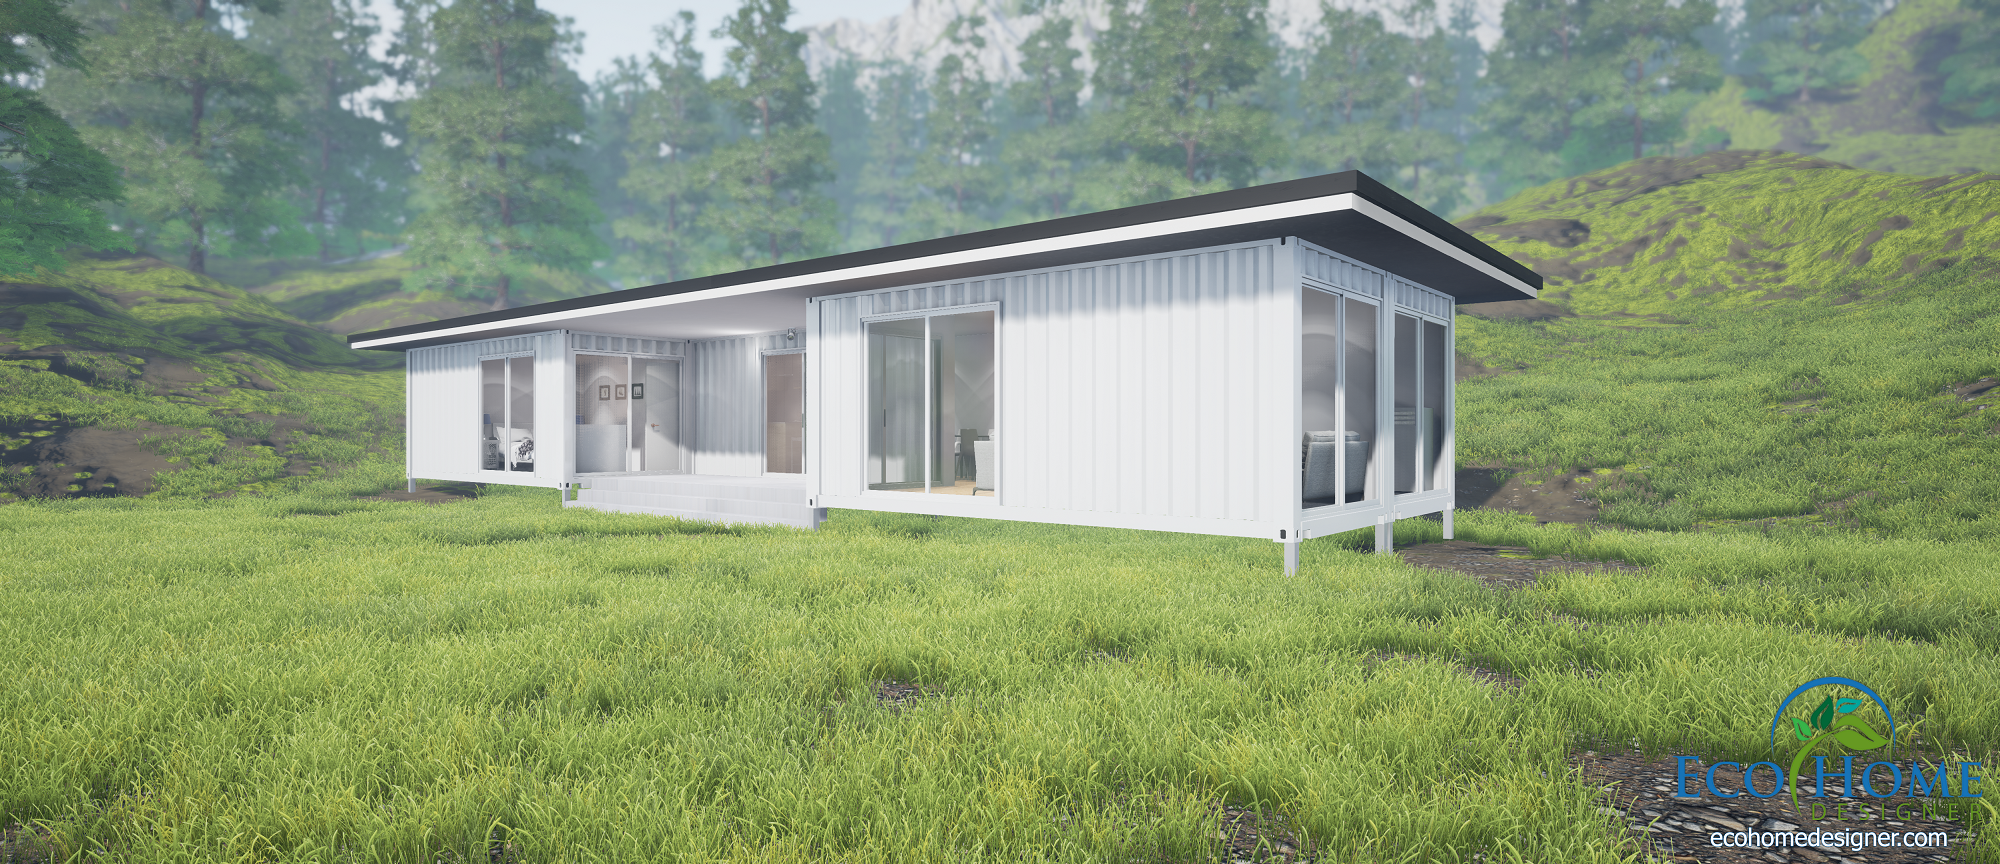 Sch7 5 x 20ft double bedroom container home eco home designer - Bithcin shipping container house ii ...